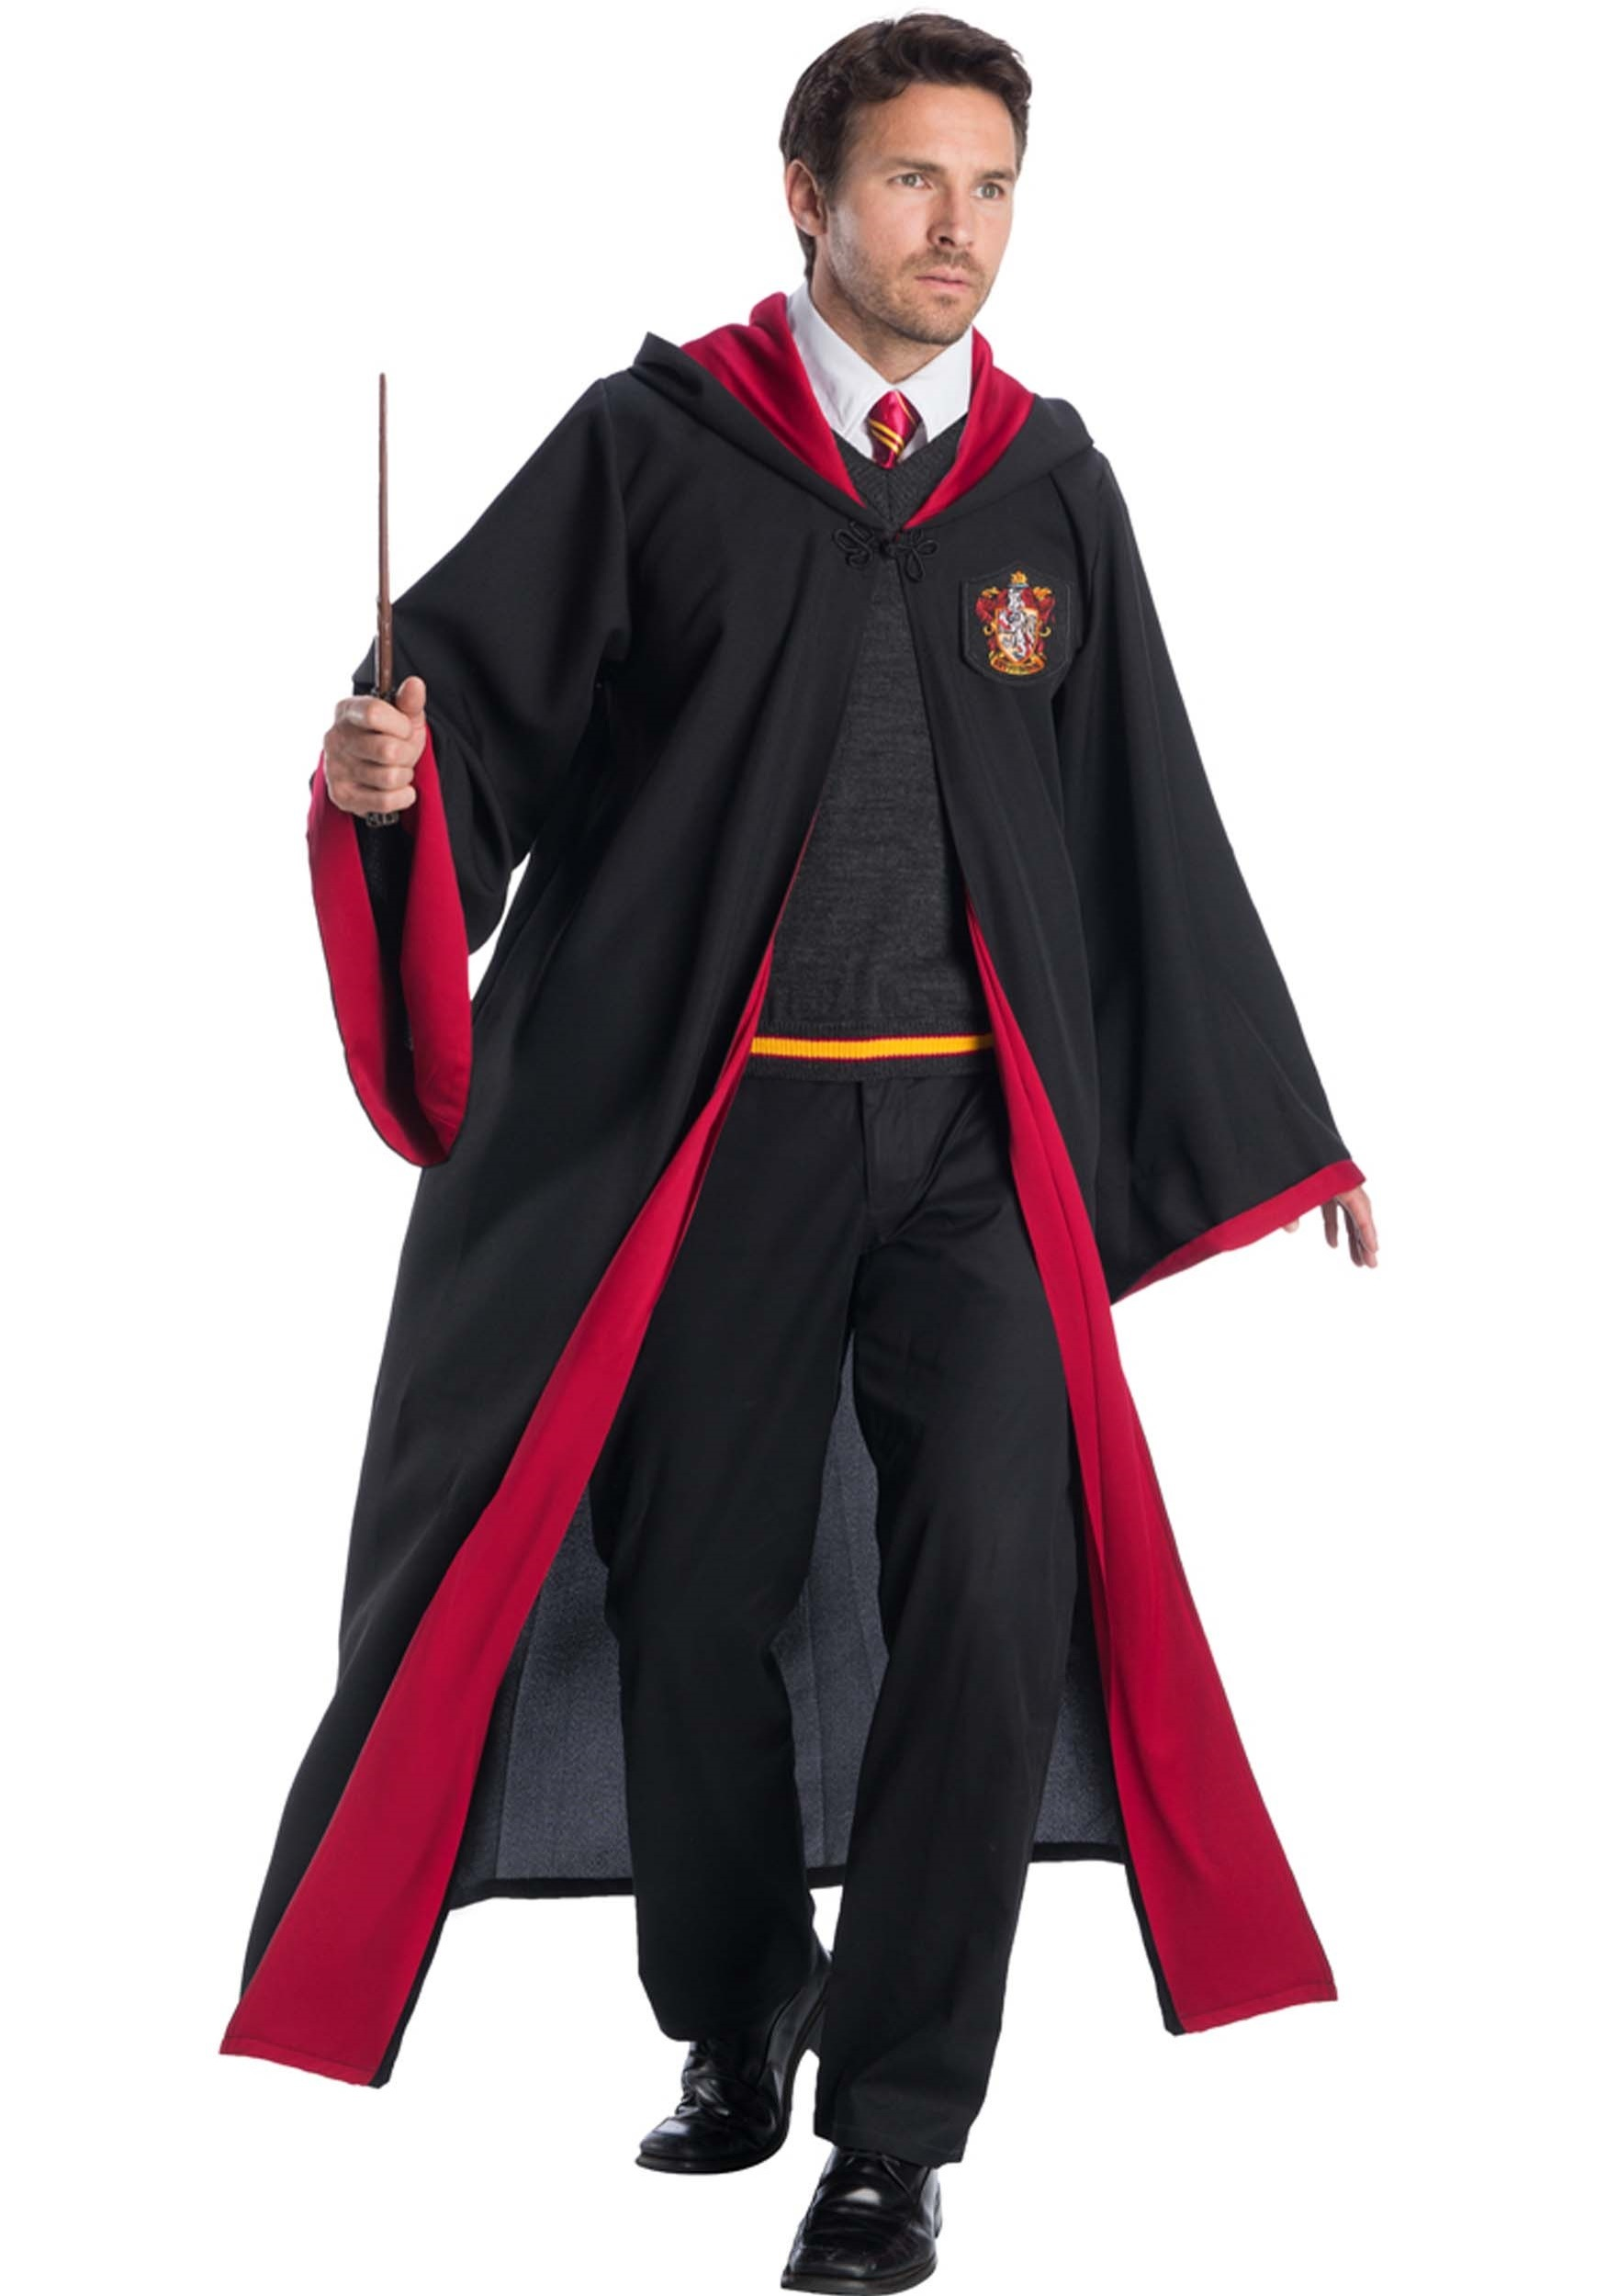 Deluxe Gryffindor Student Costume for Adults